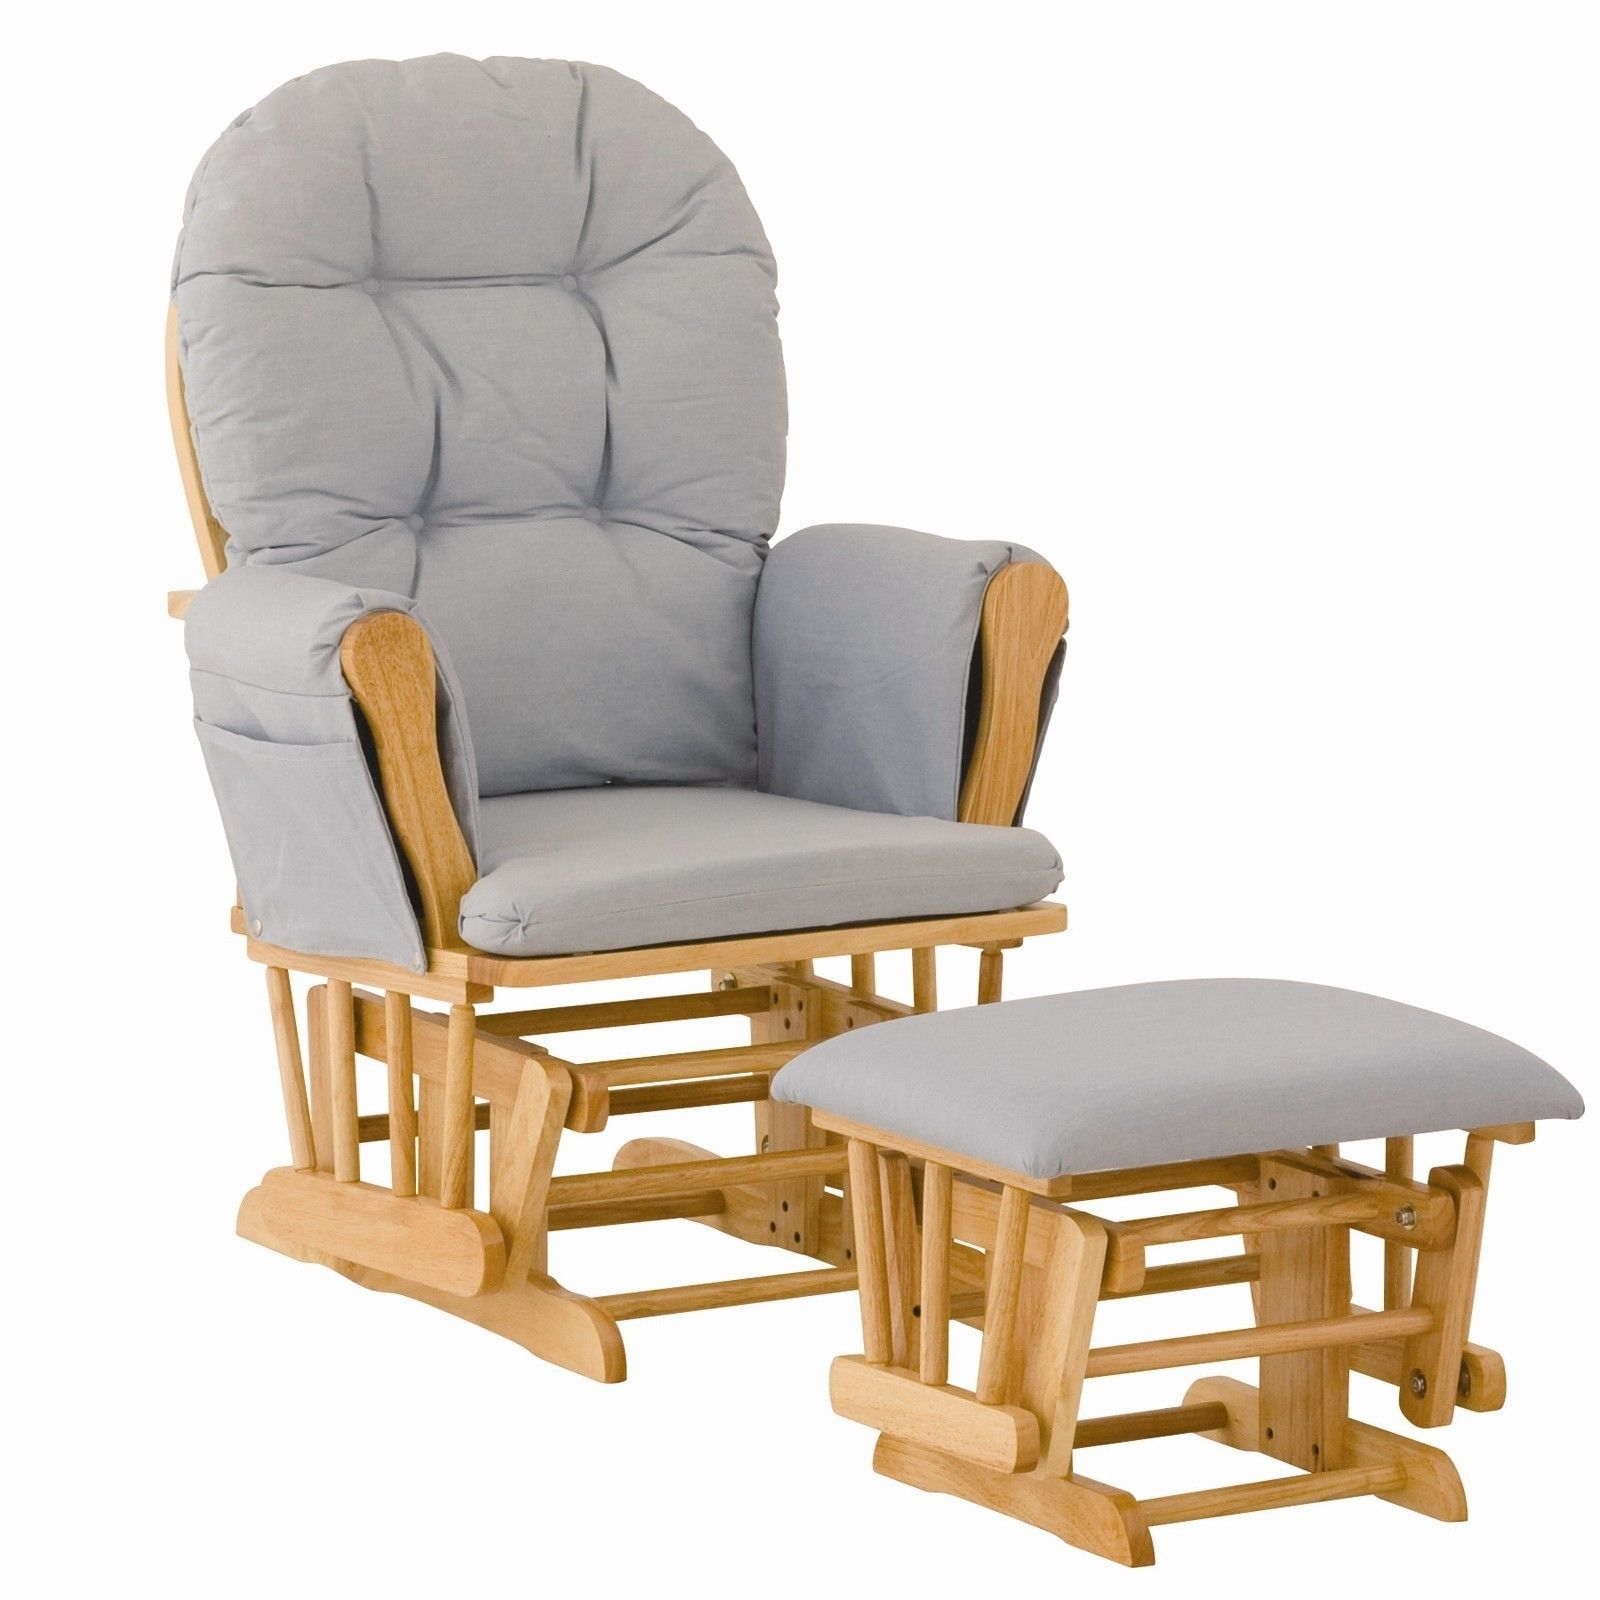 Image of: Baby rocking chair picture